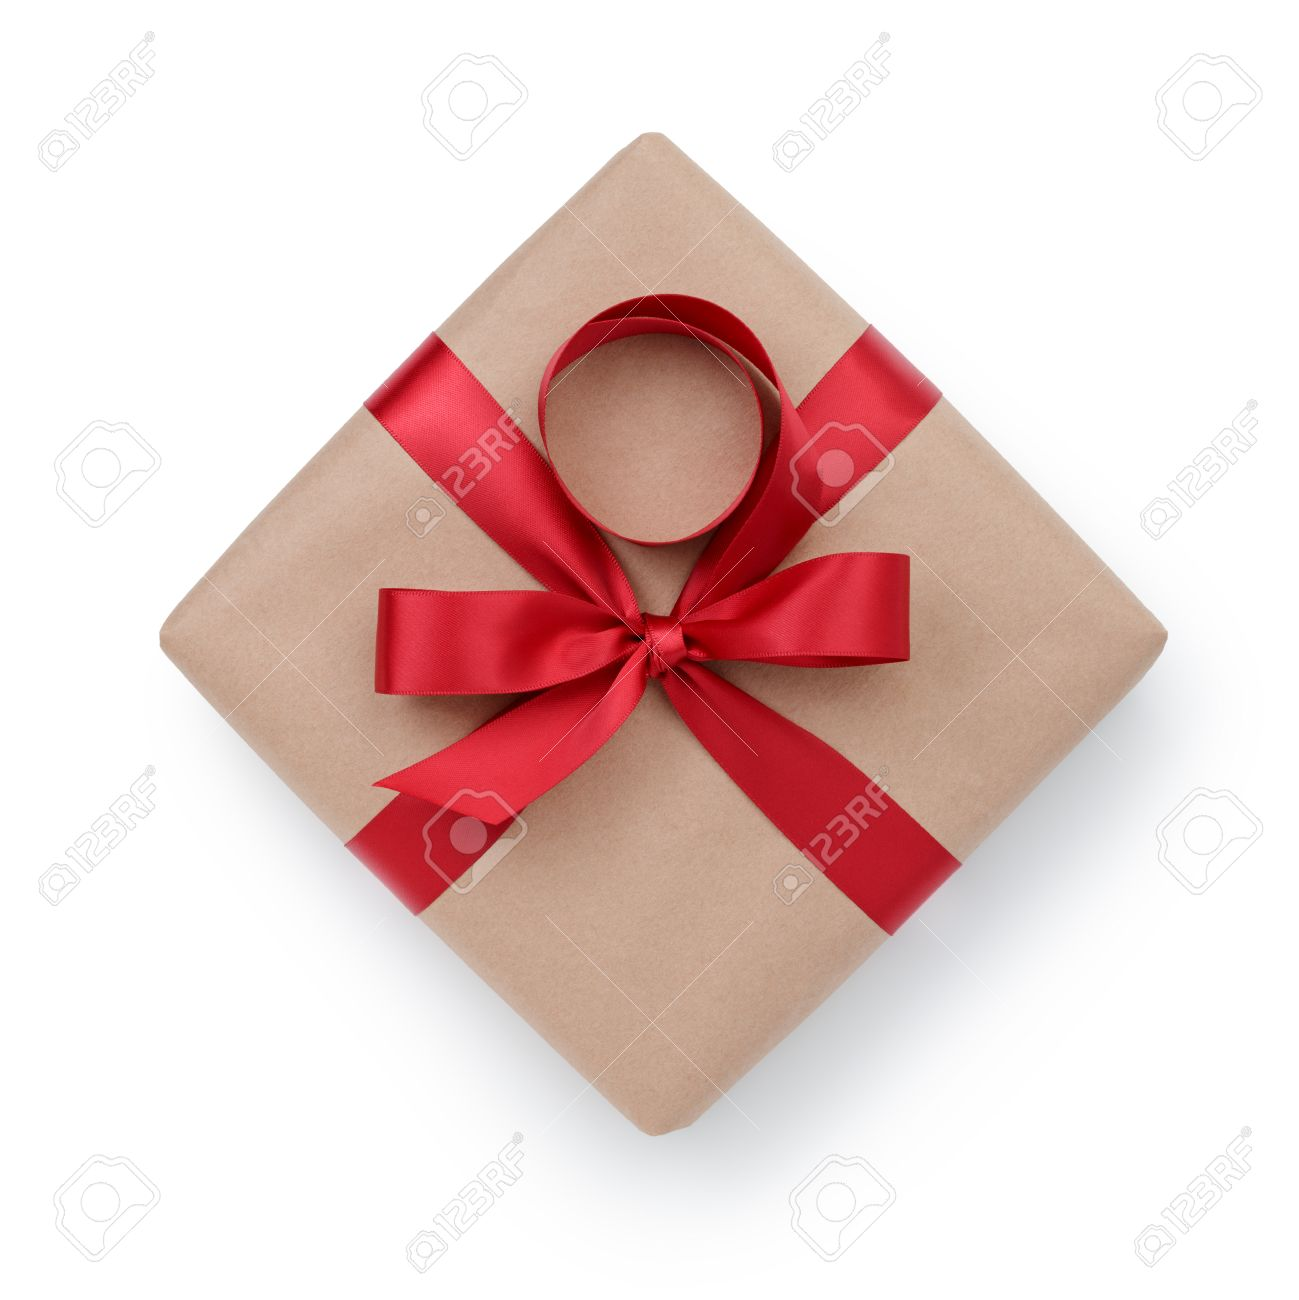 kraft paper gift box with ribbon bow from above, white background - 33600179